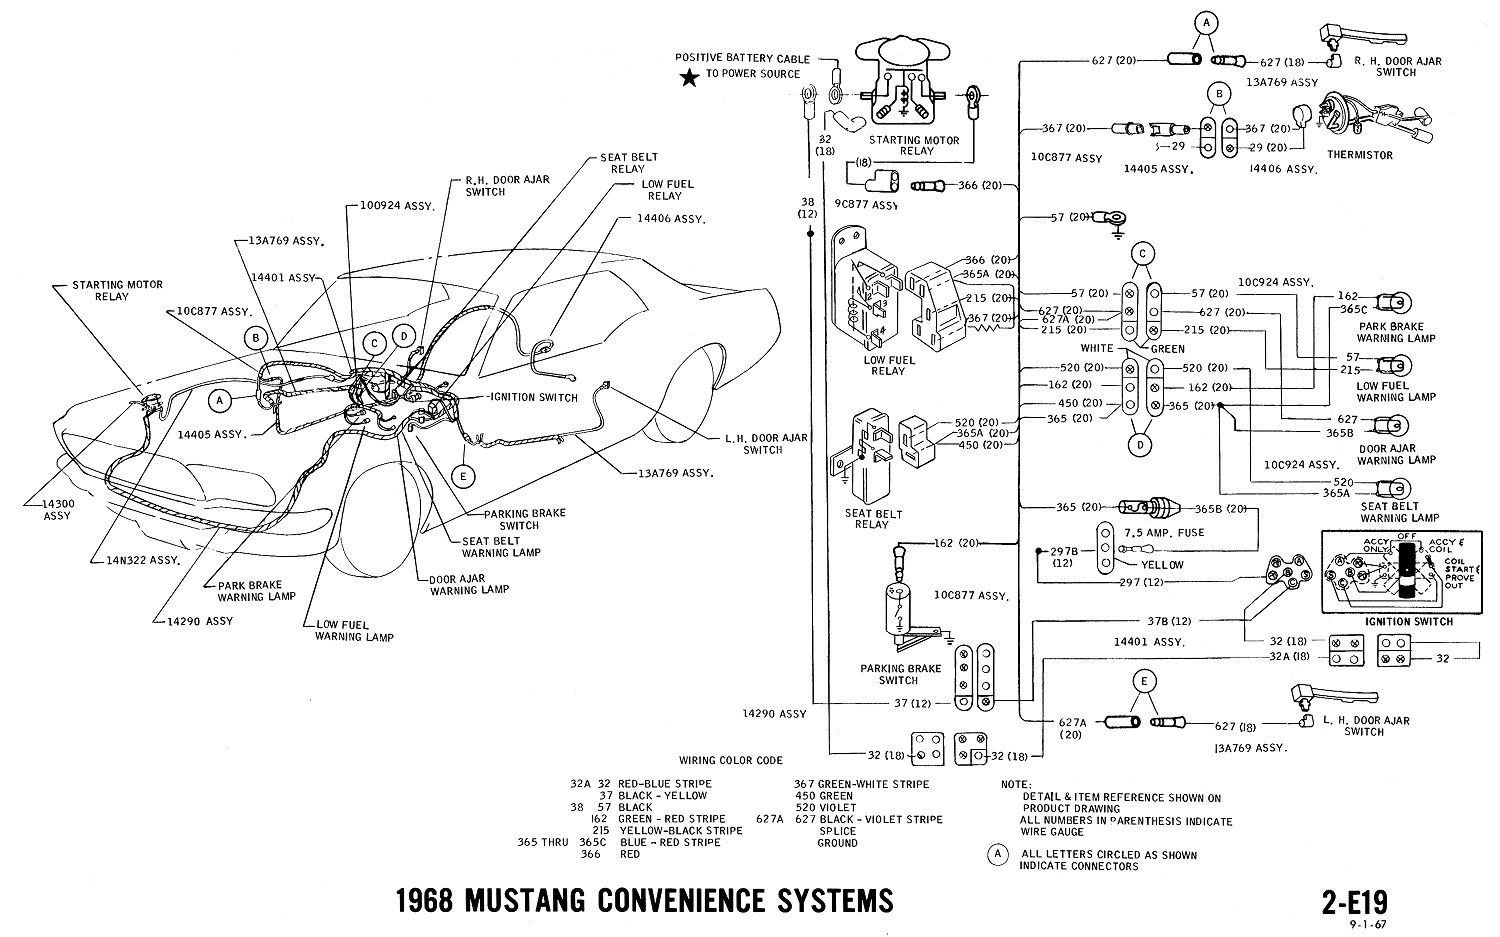 1968 mustang wiring diagram convenience systems 1968 mustang wiring diagrams and vacuum schematics average joe 1969 mustang wiring diagram at bayanpartner.co